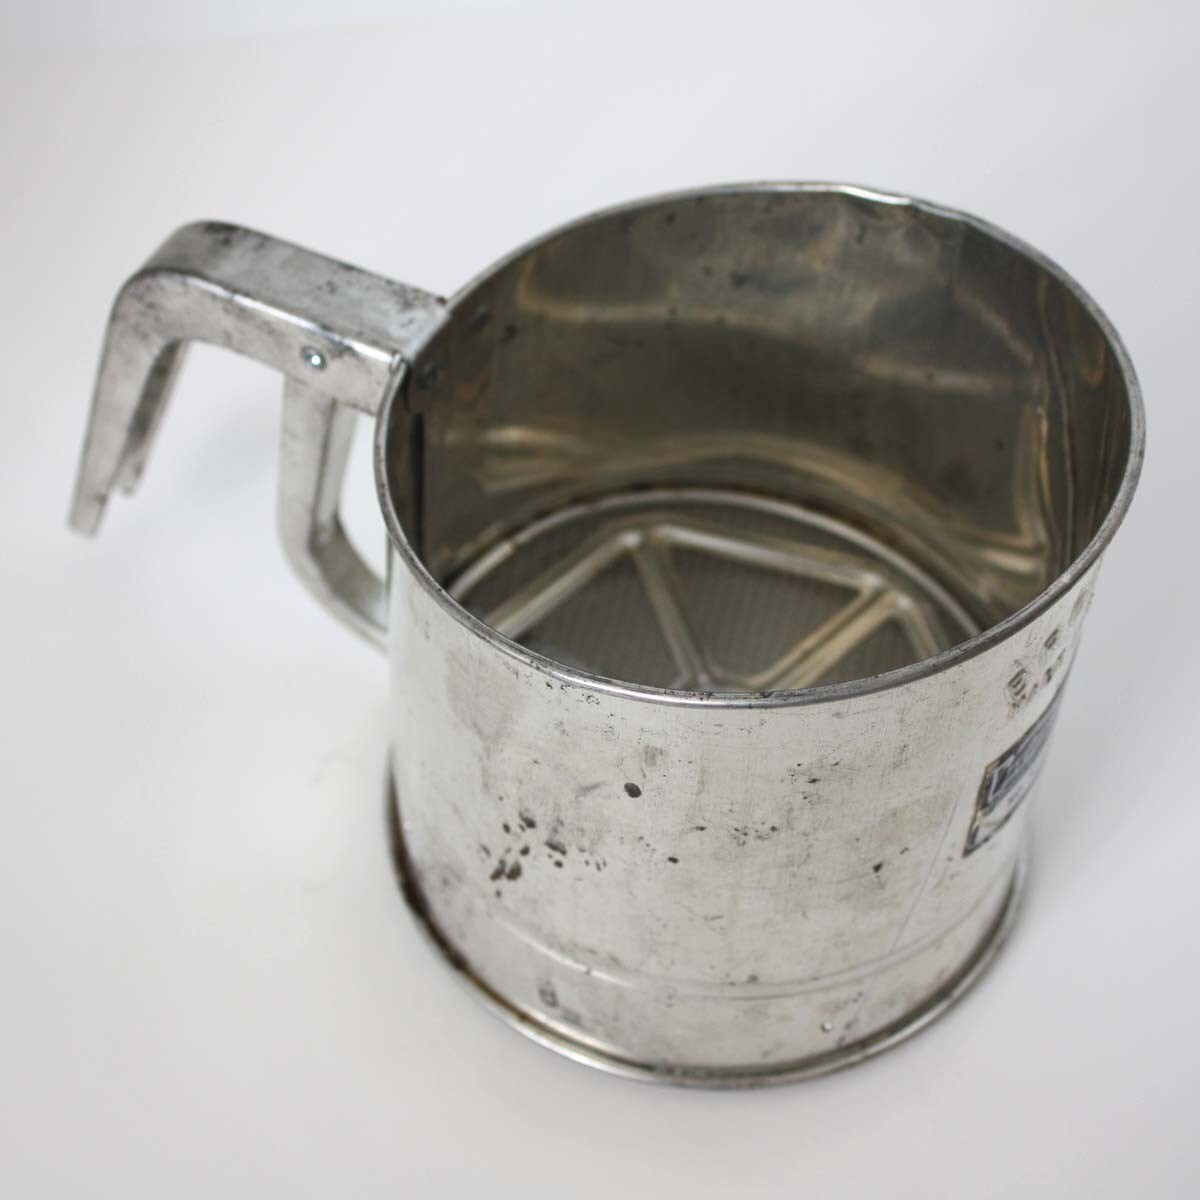 flour sifter - photo #1